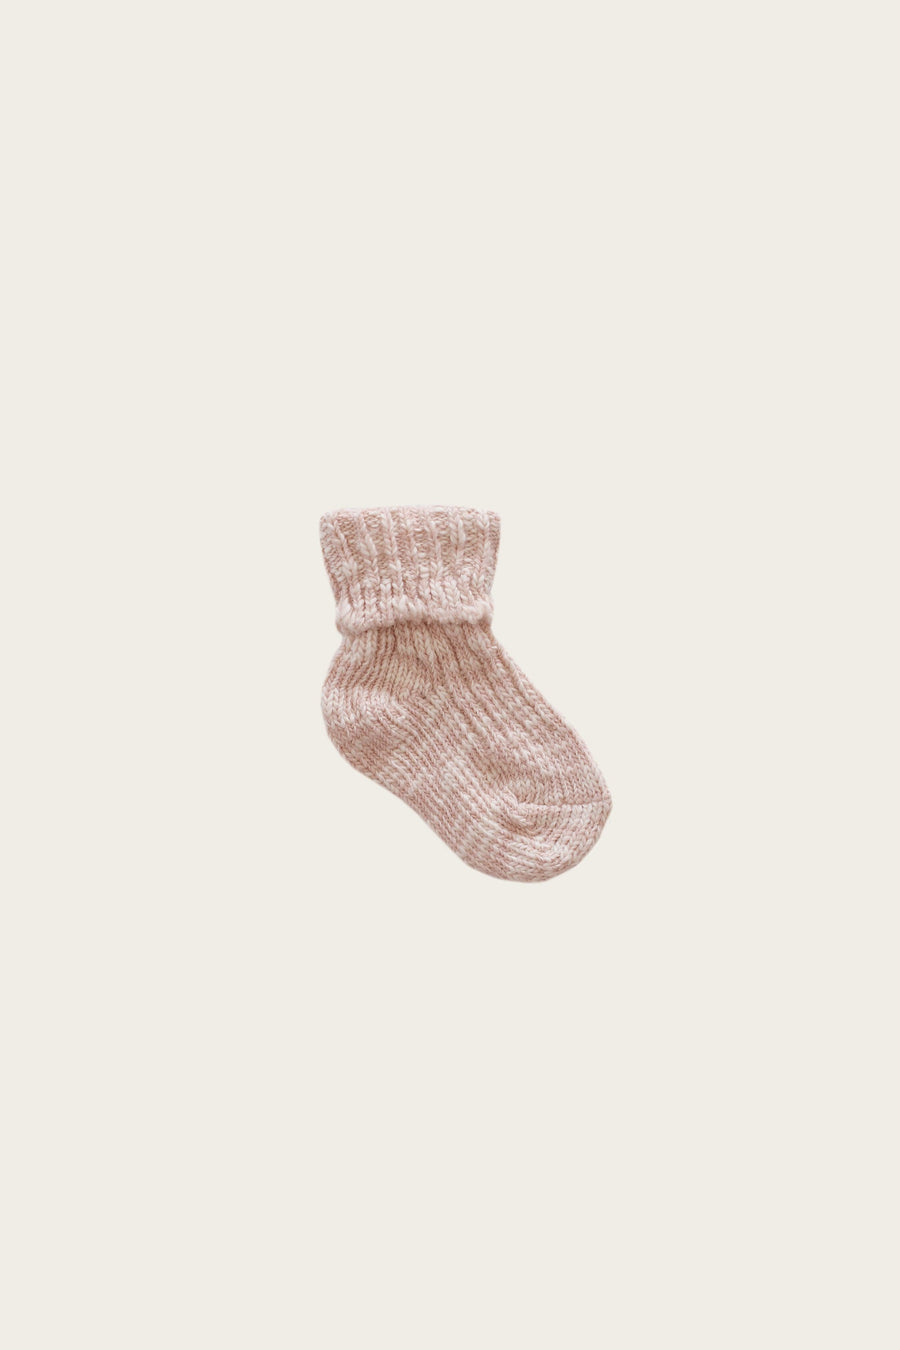 Marle Sock | ROSE DUST | Jamie Kay